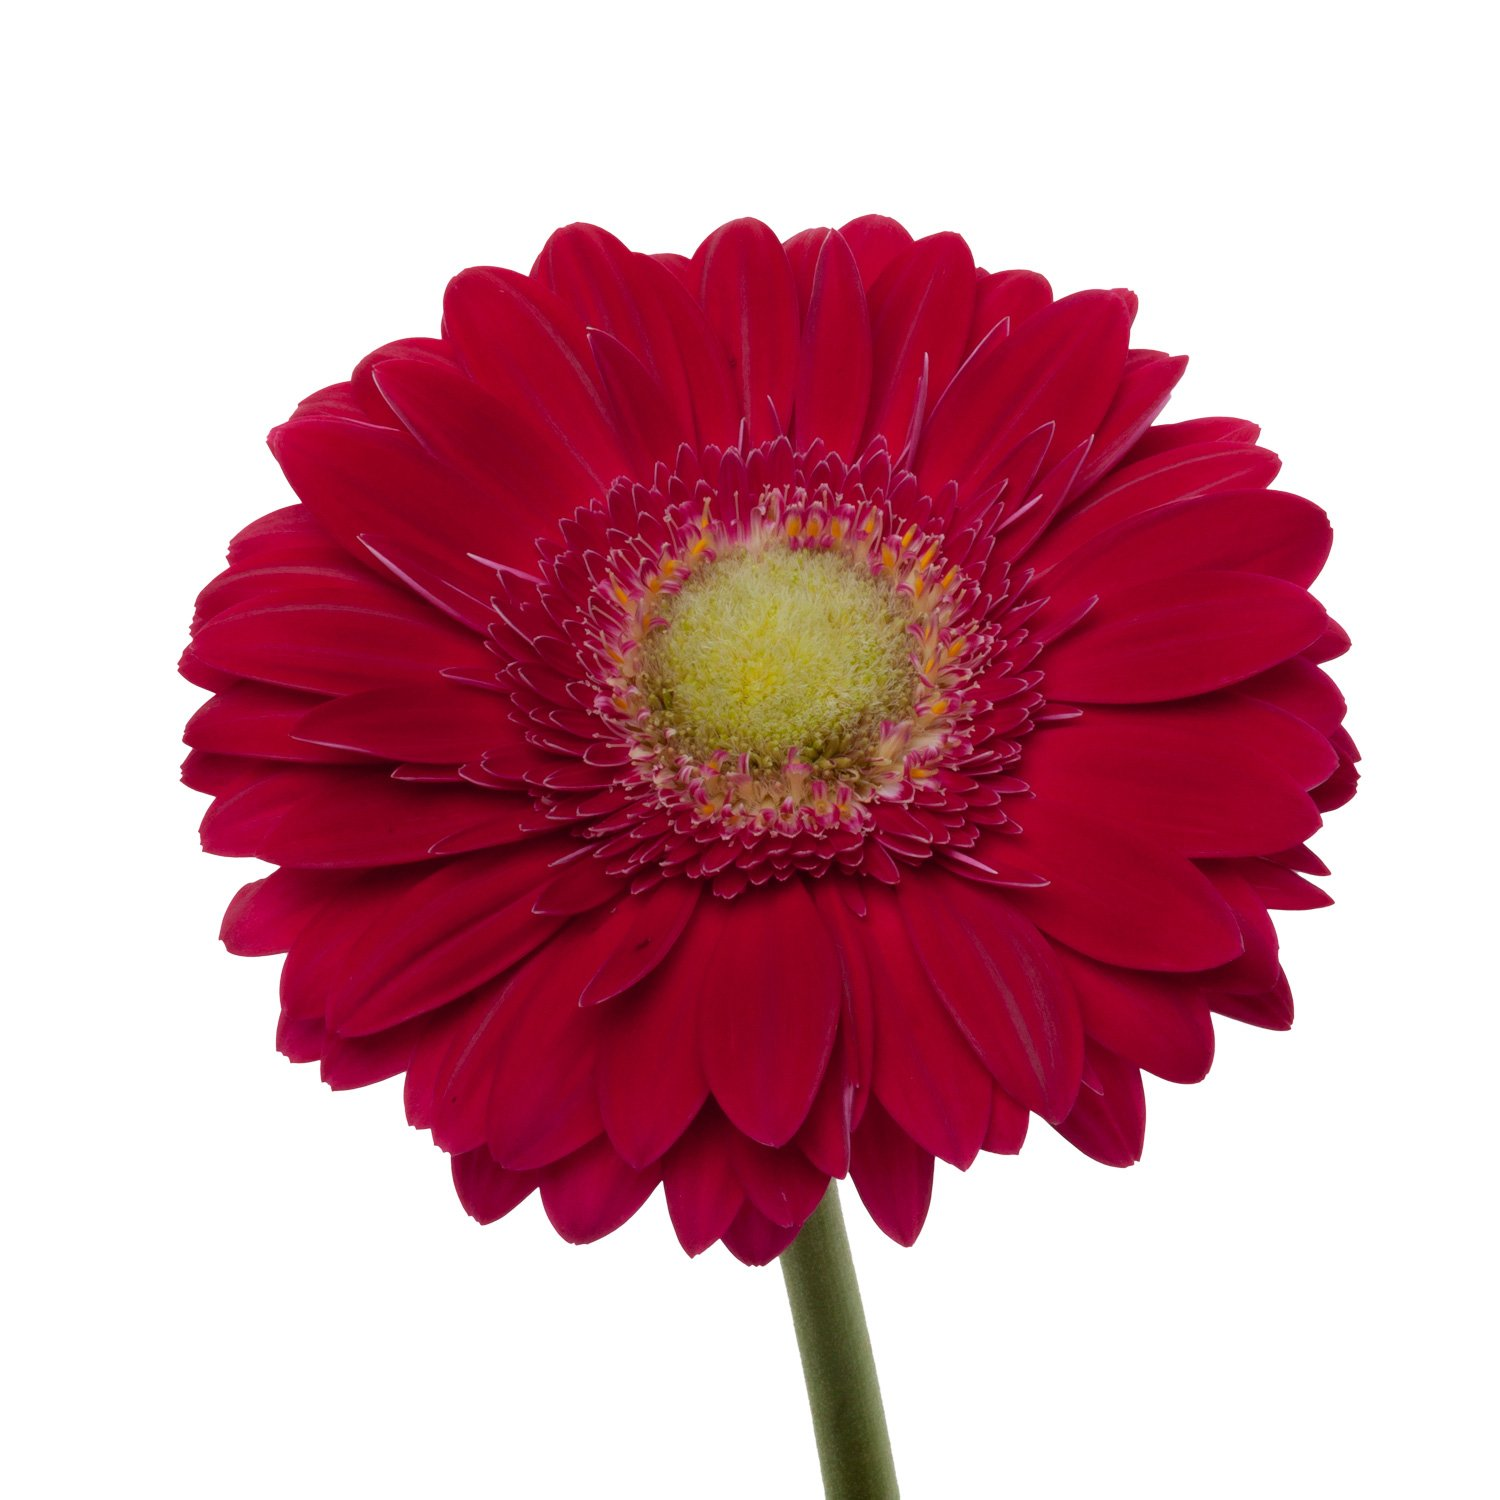 Gerbera Light Center | Dark Pink - 40 Stem Count by Flower Farm Shop